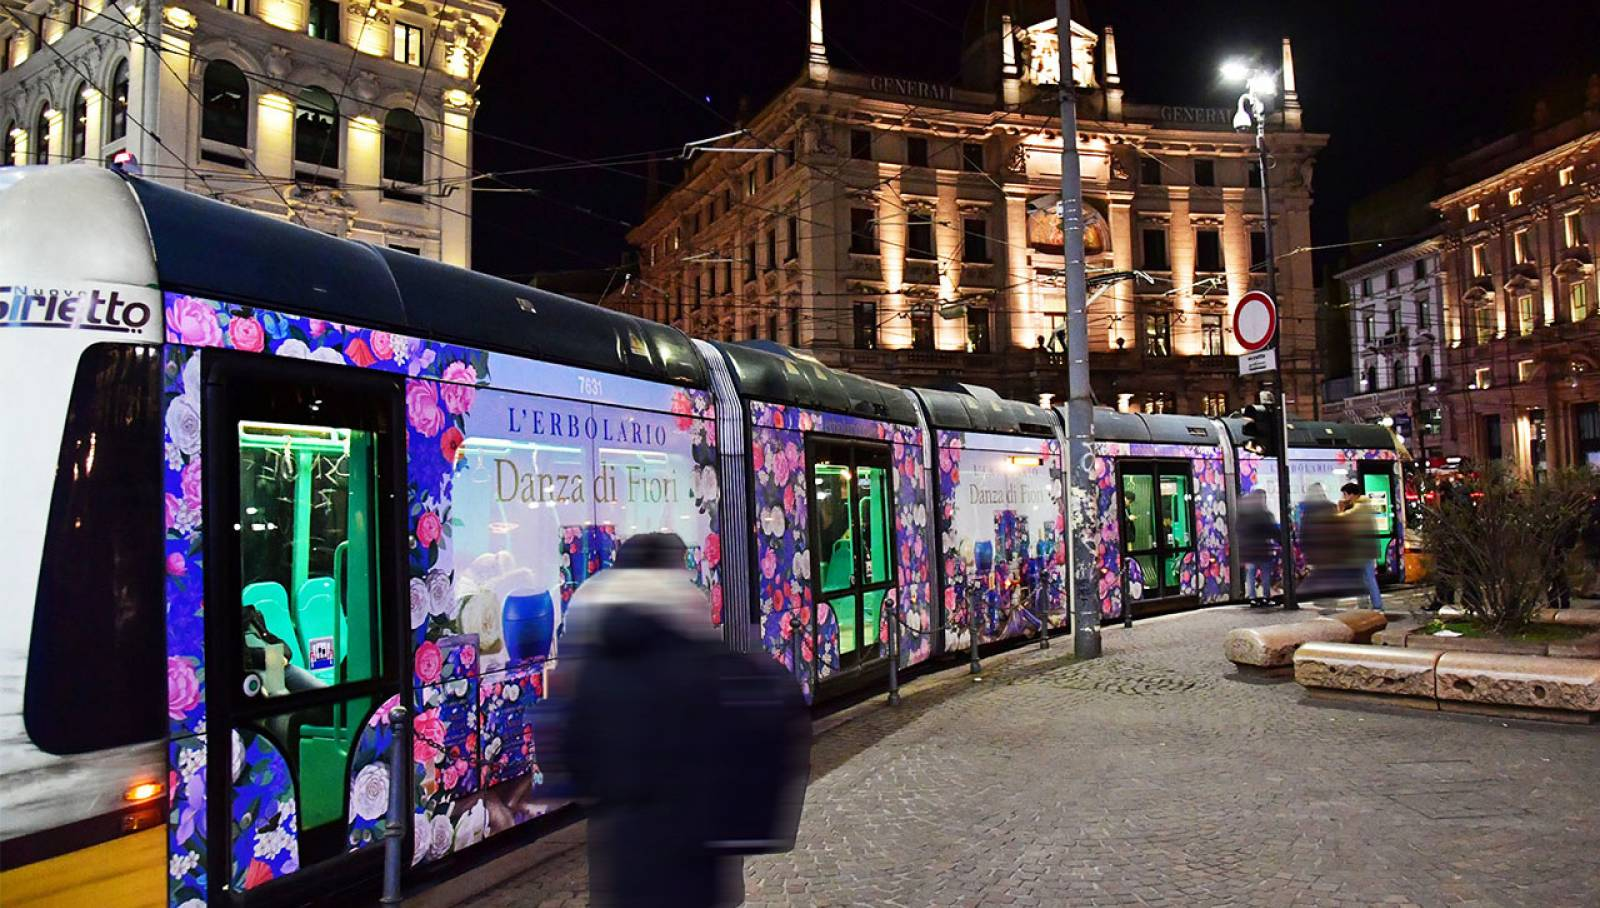 OOH advertising IGPDecaux in Milan Wrapped Vehicles for L'Erbolario